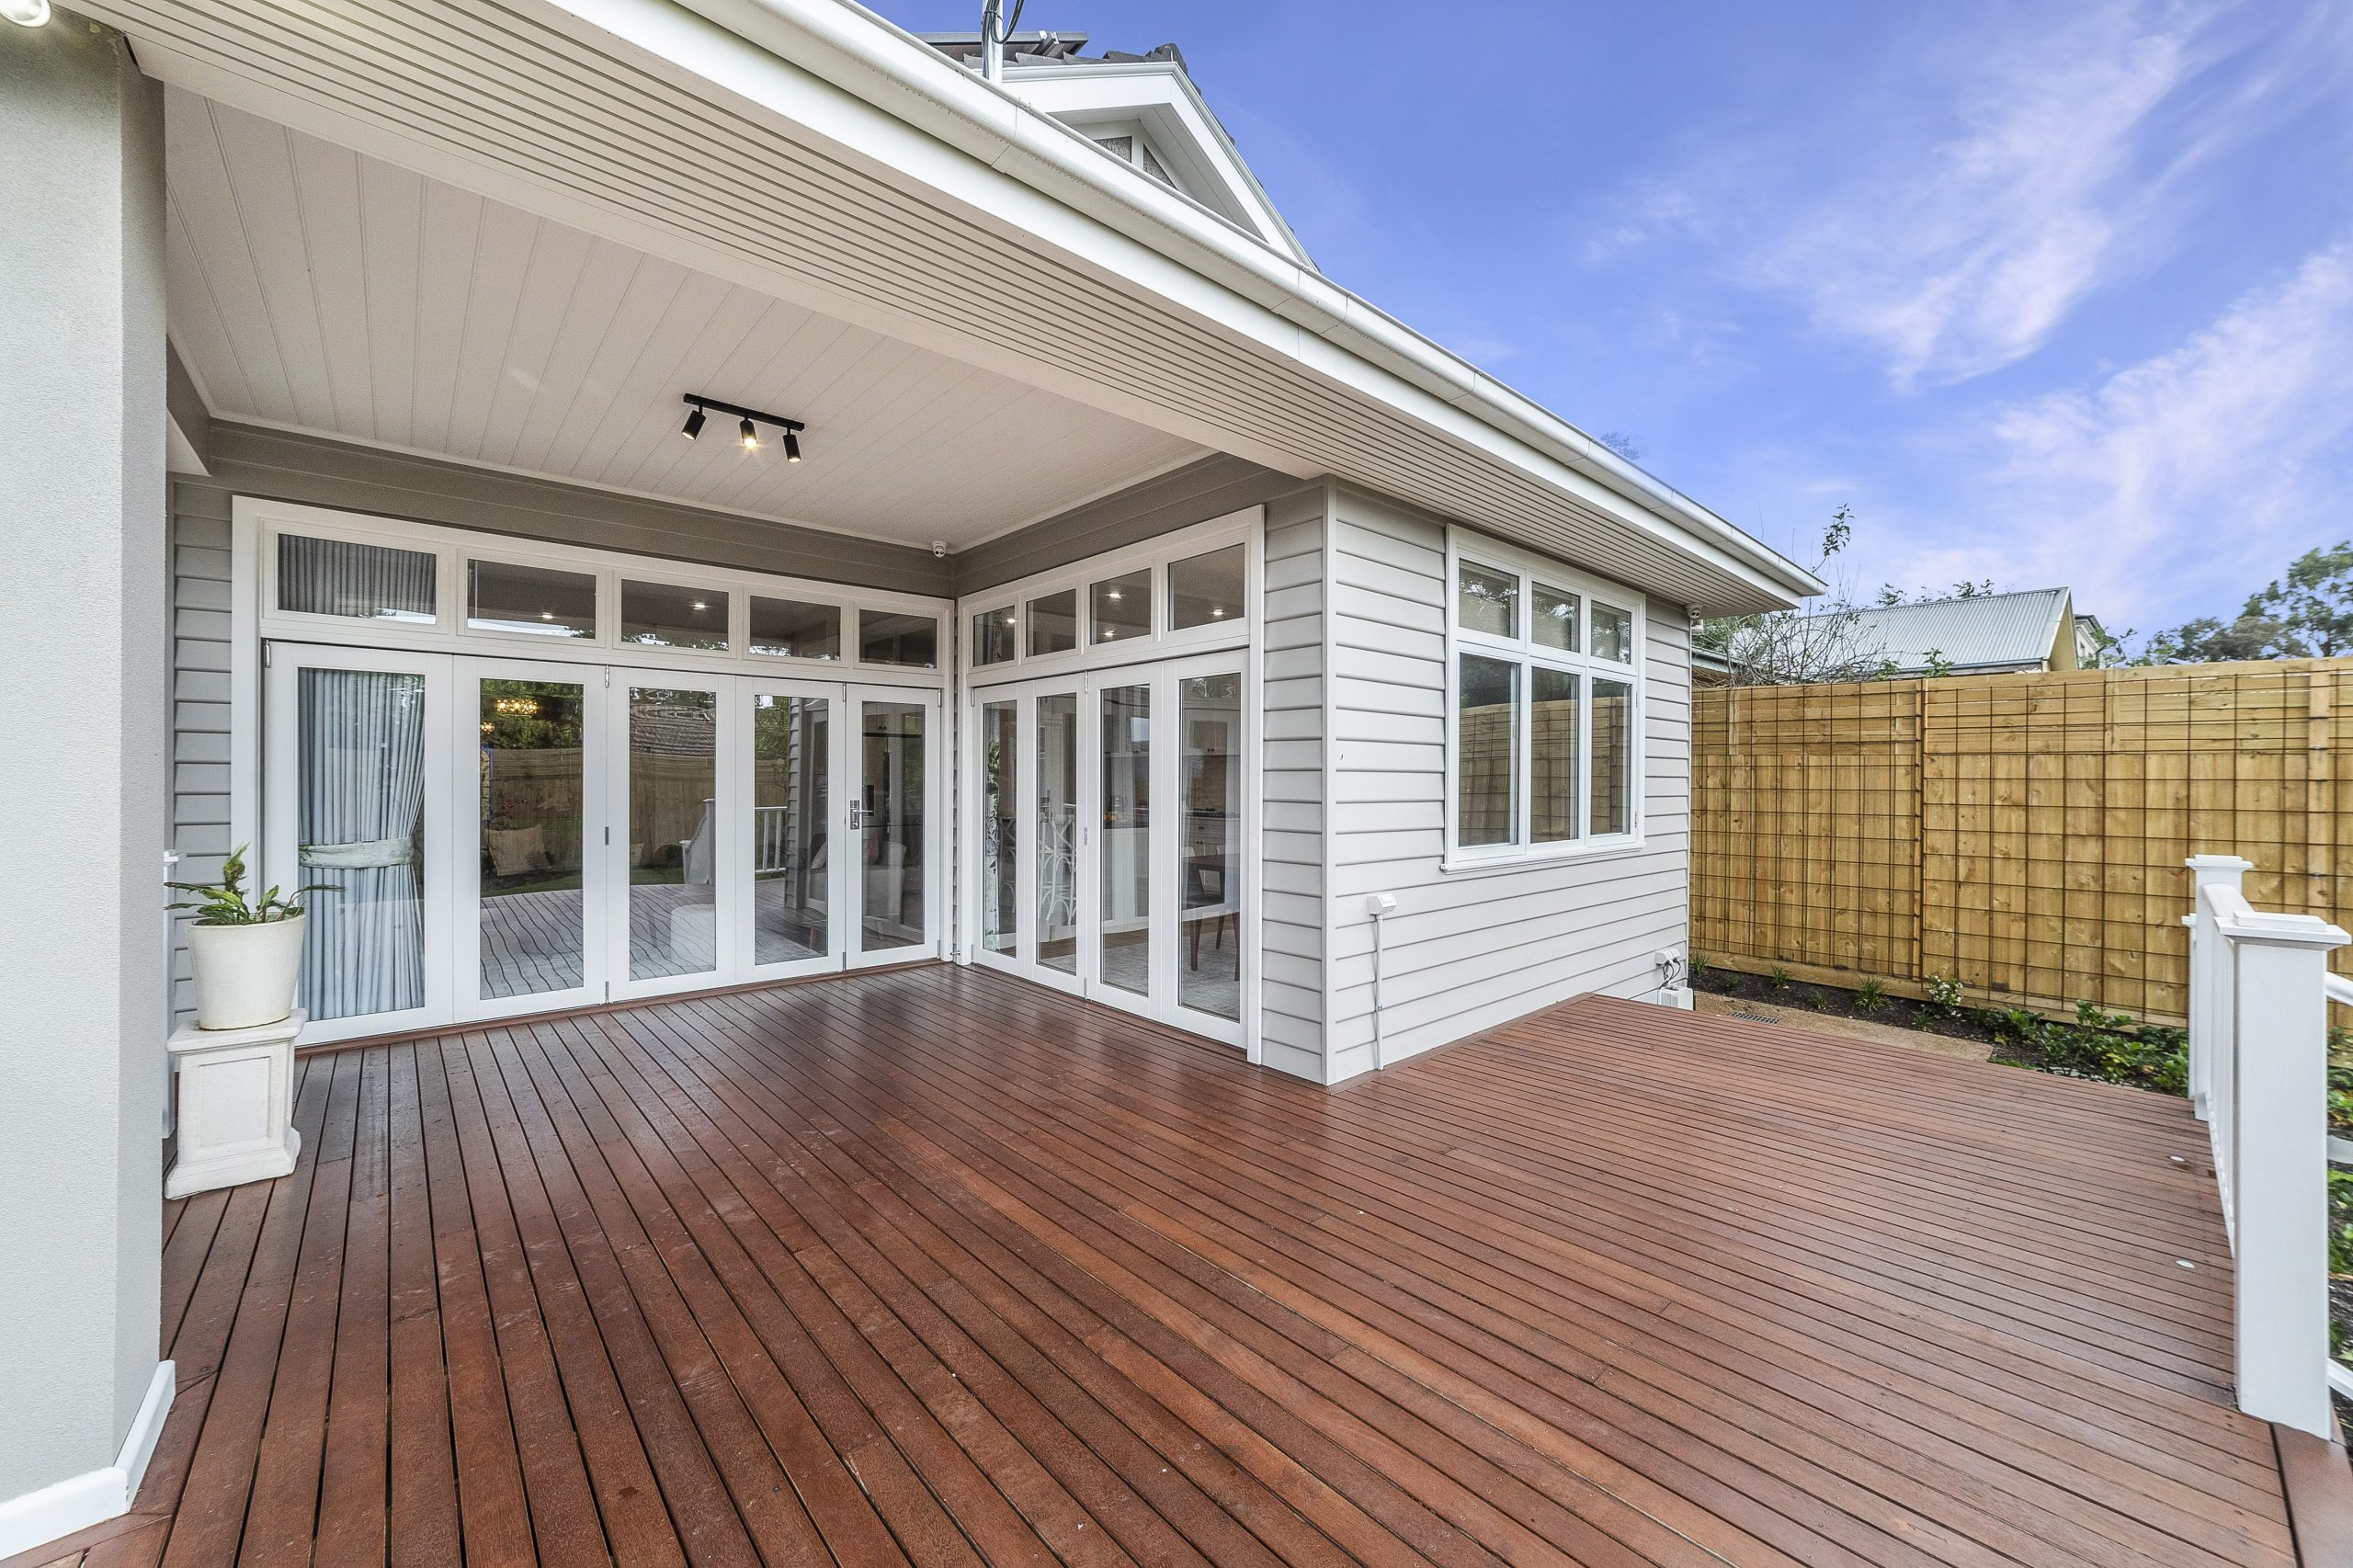 How Optimise Budget When Renovating Your Home